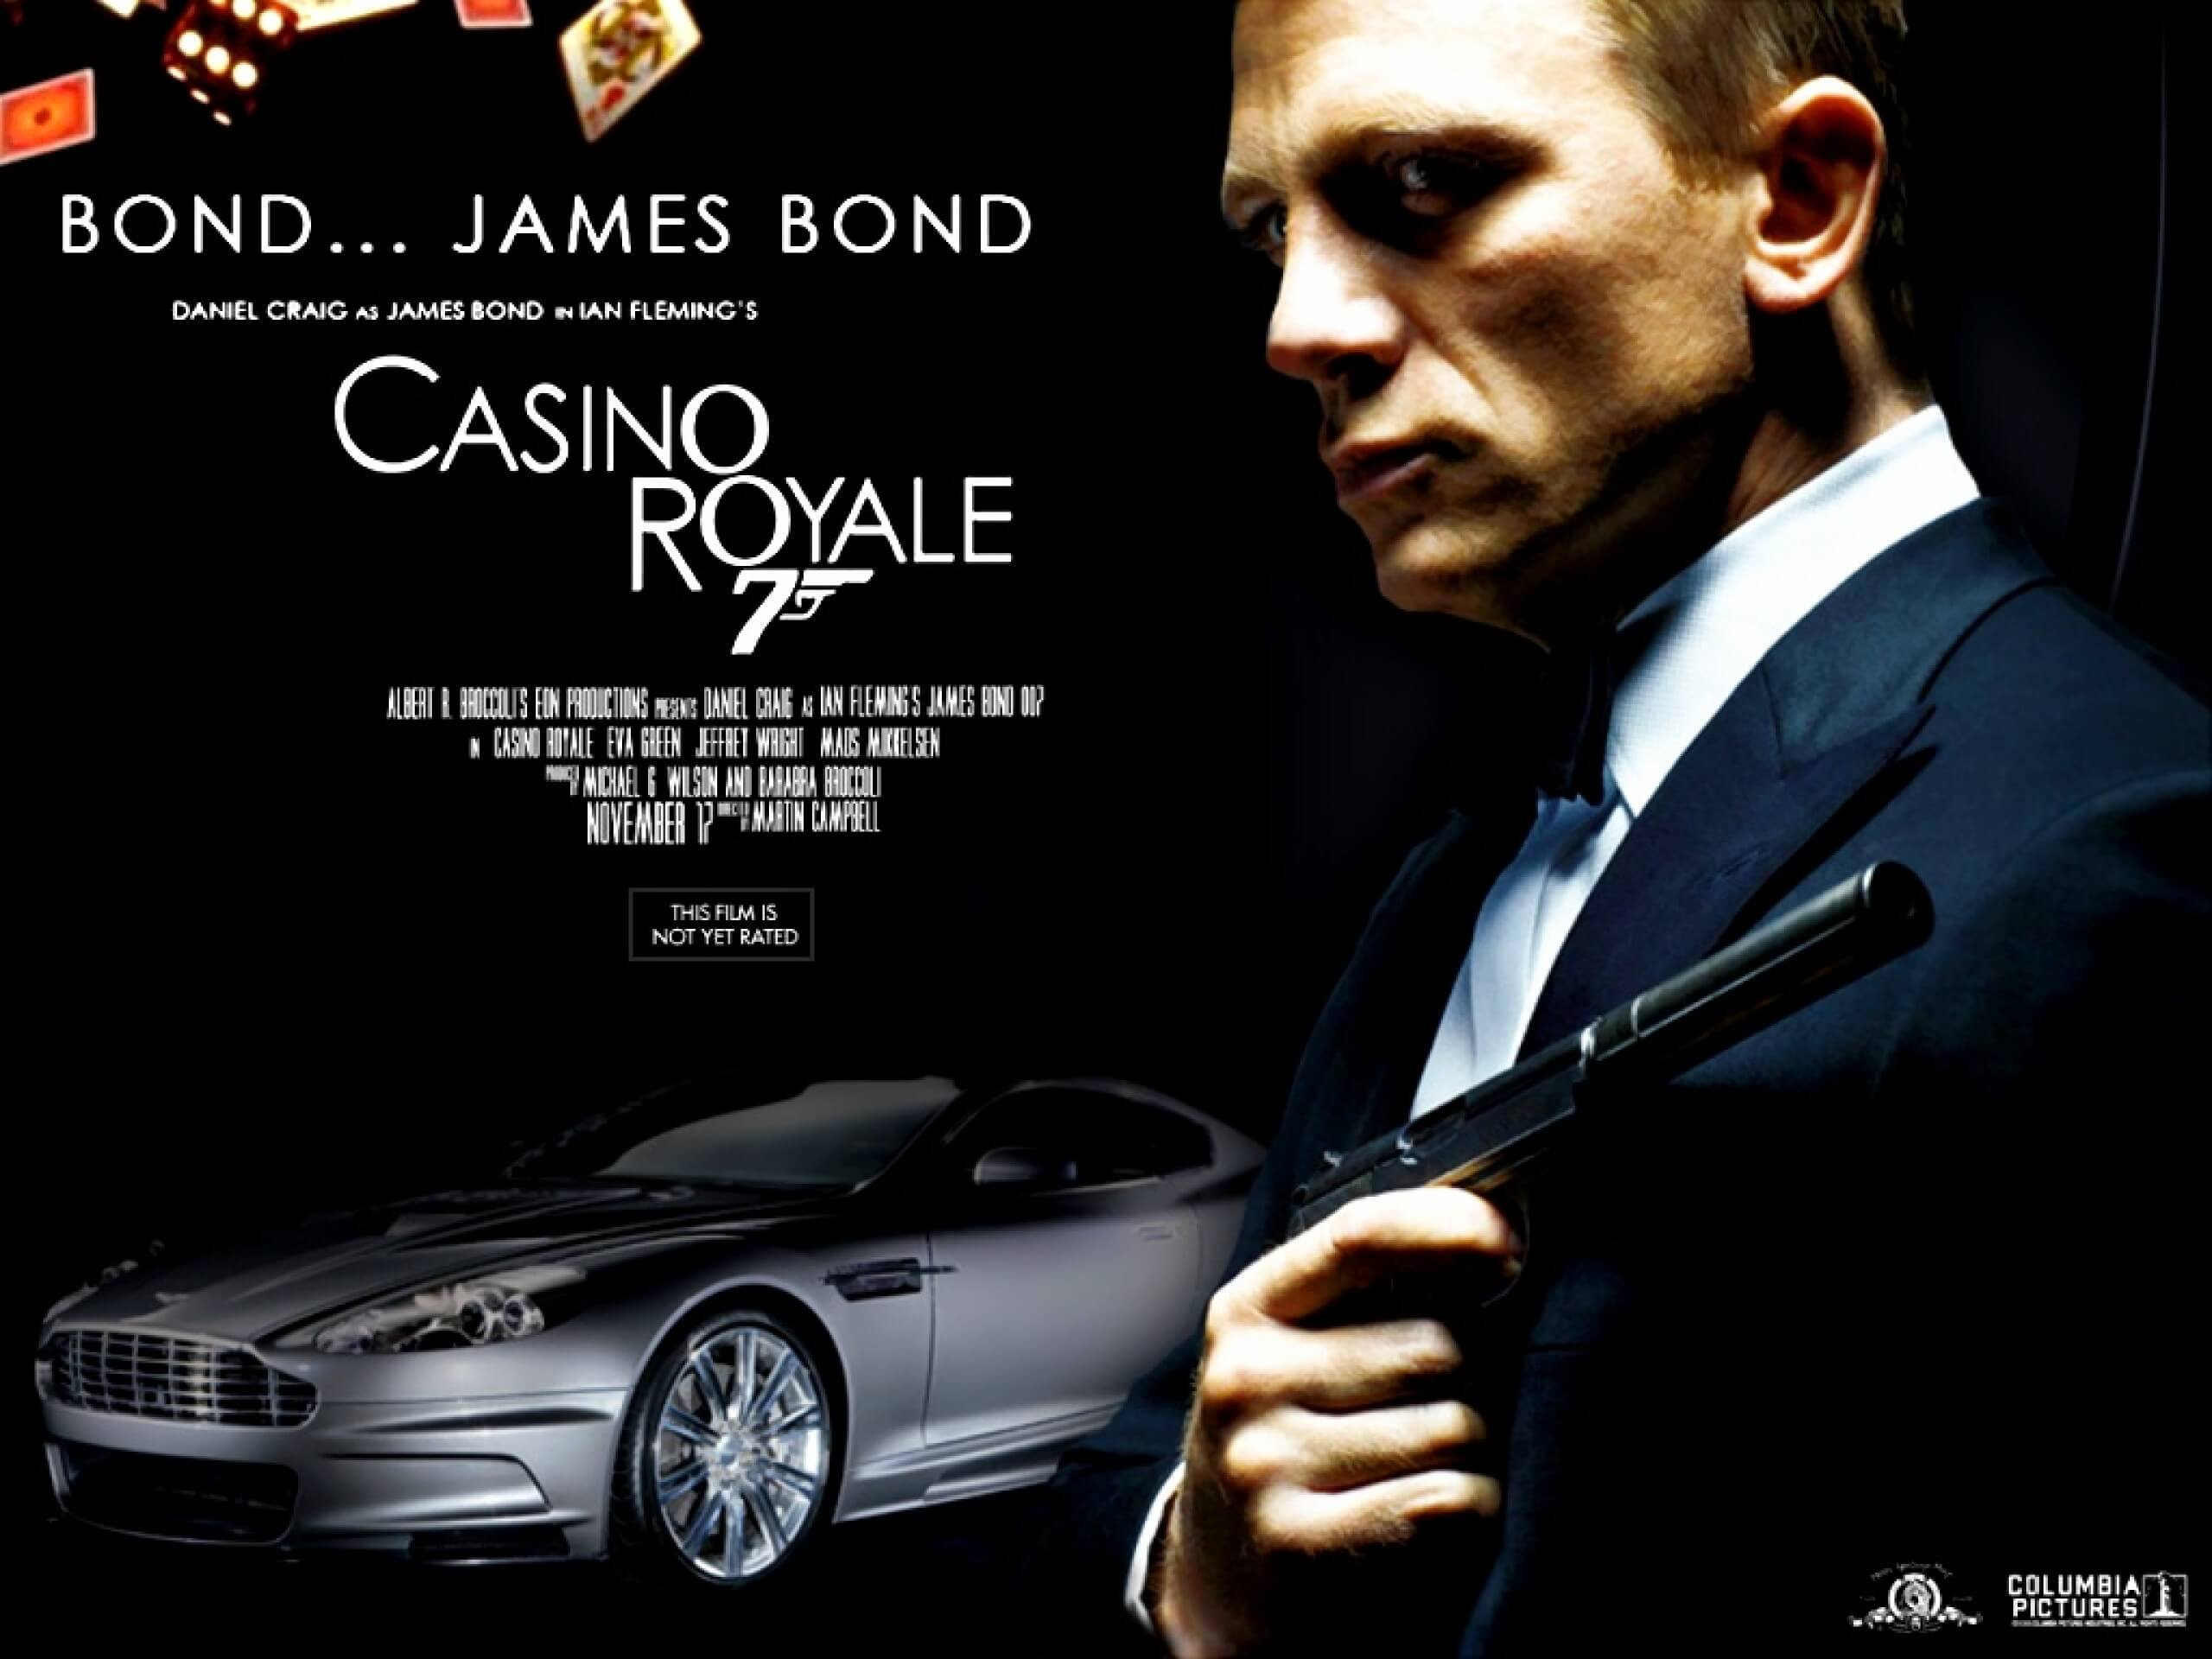 James Bond 007 Casino Royale Gary Trotman